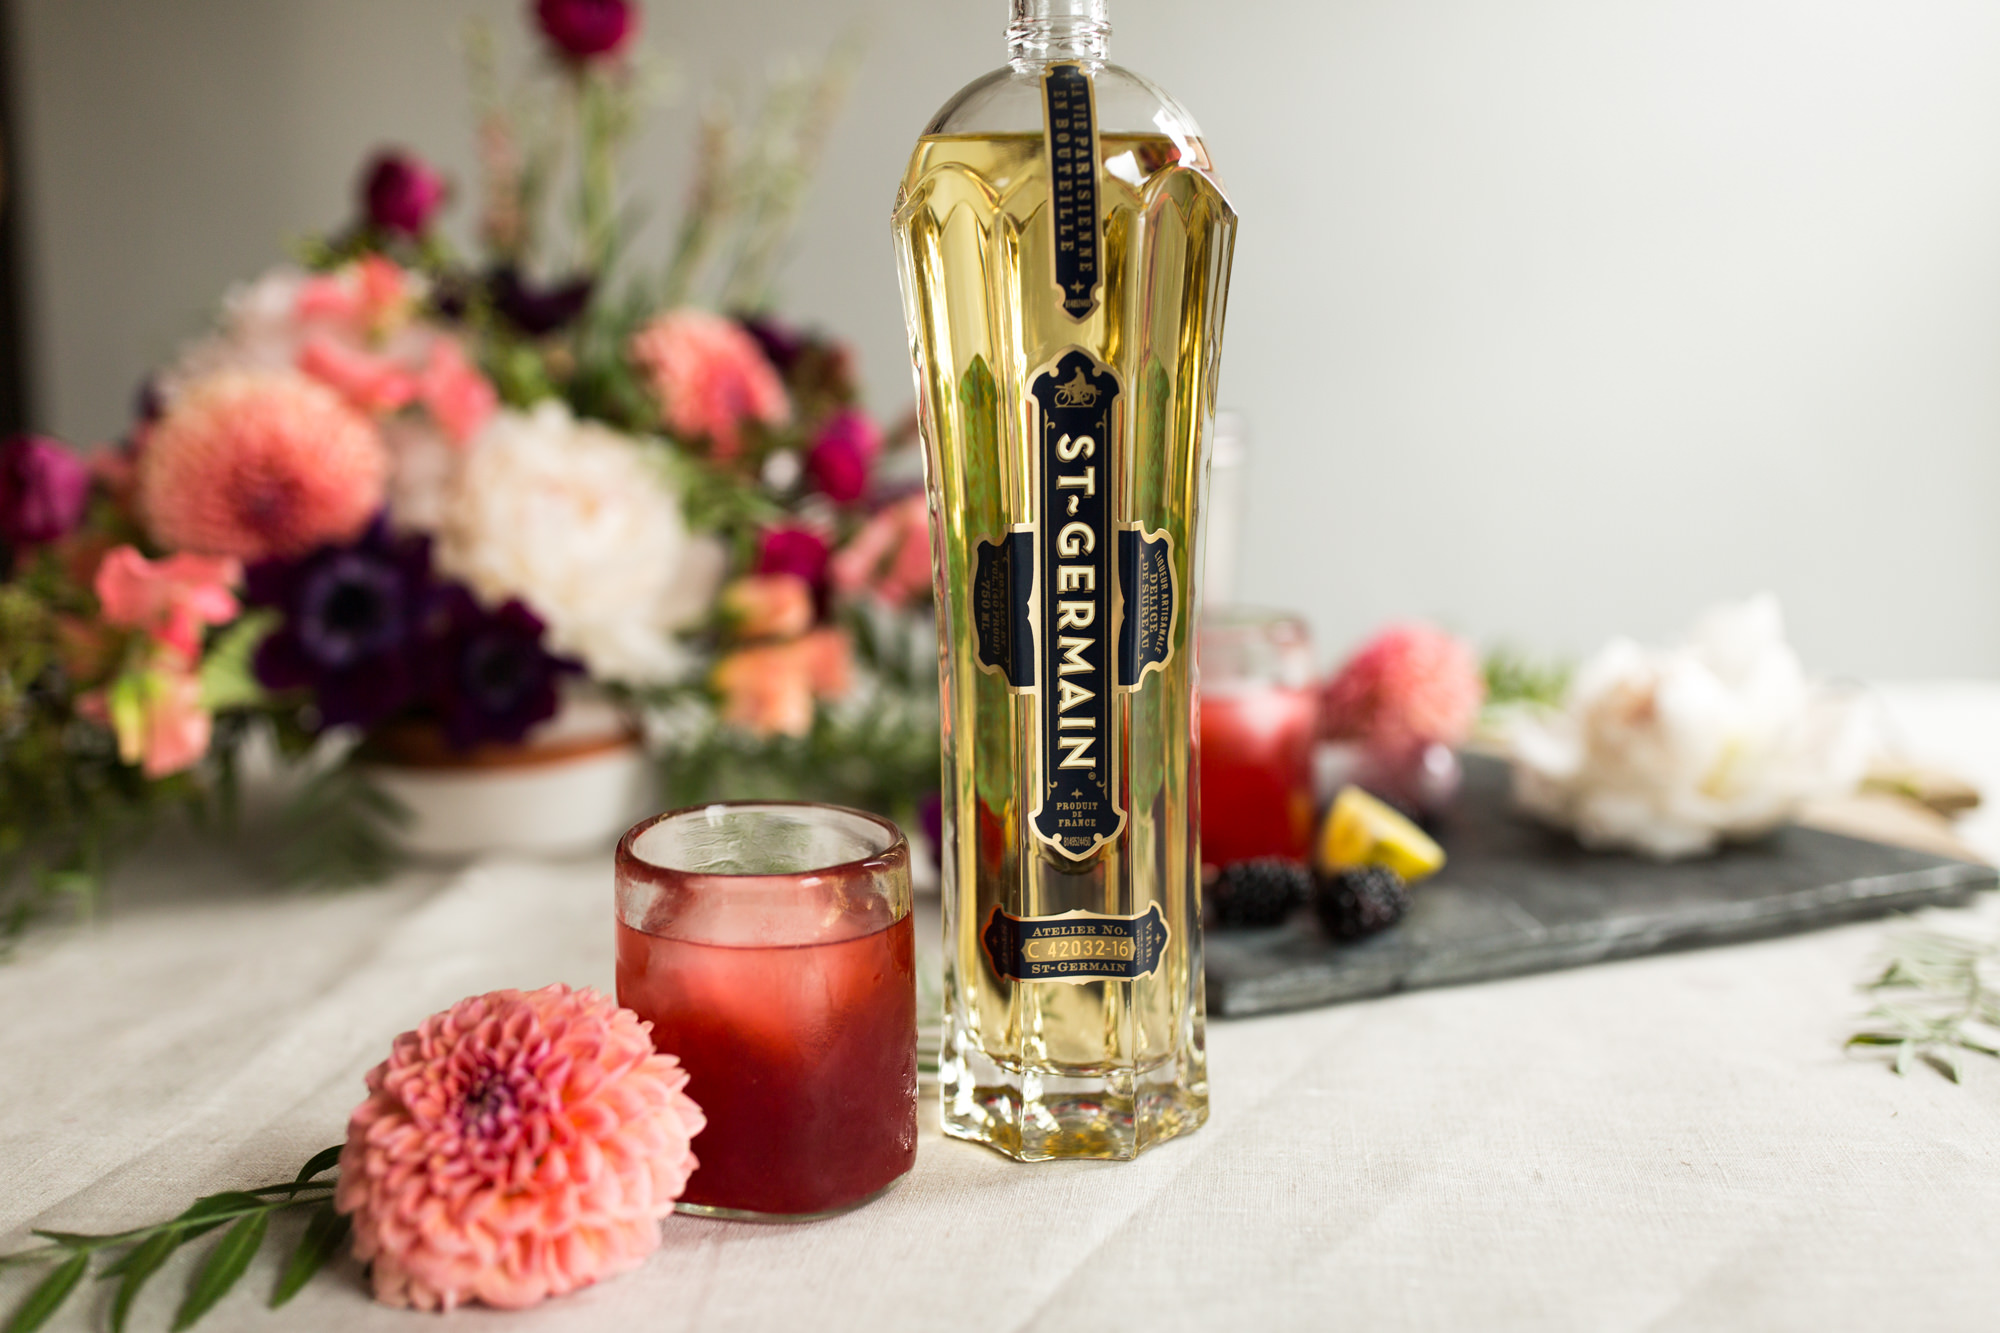 fond life and honeycomb flowers cocktail recipe-42.jpg